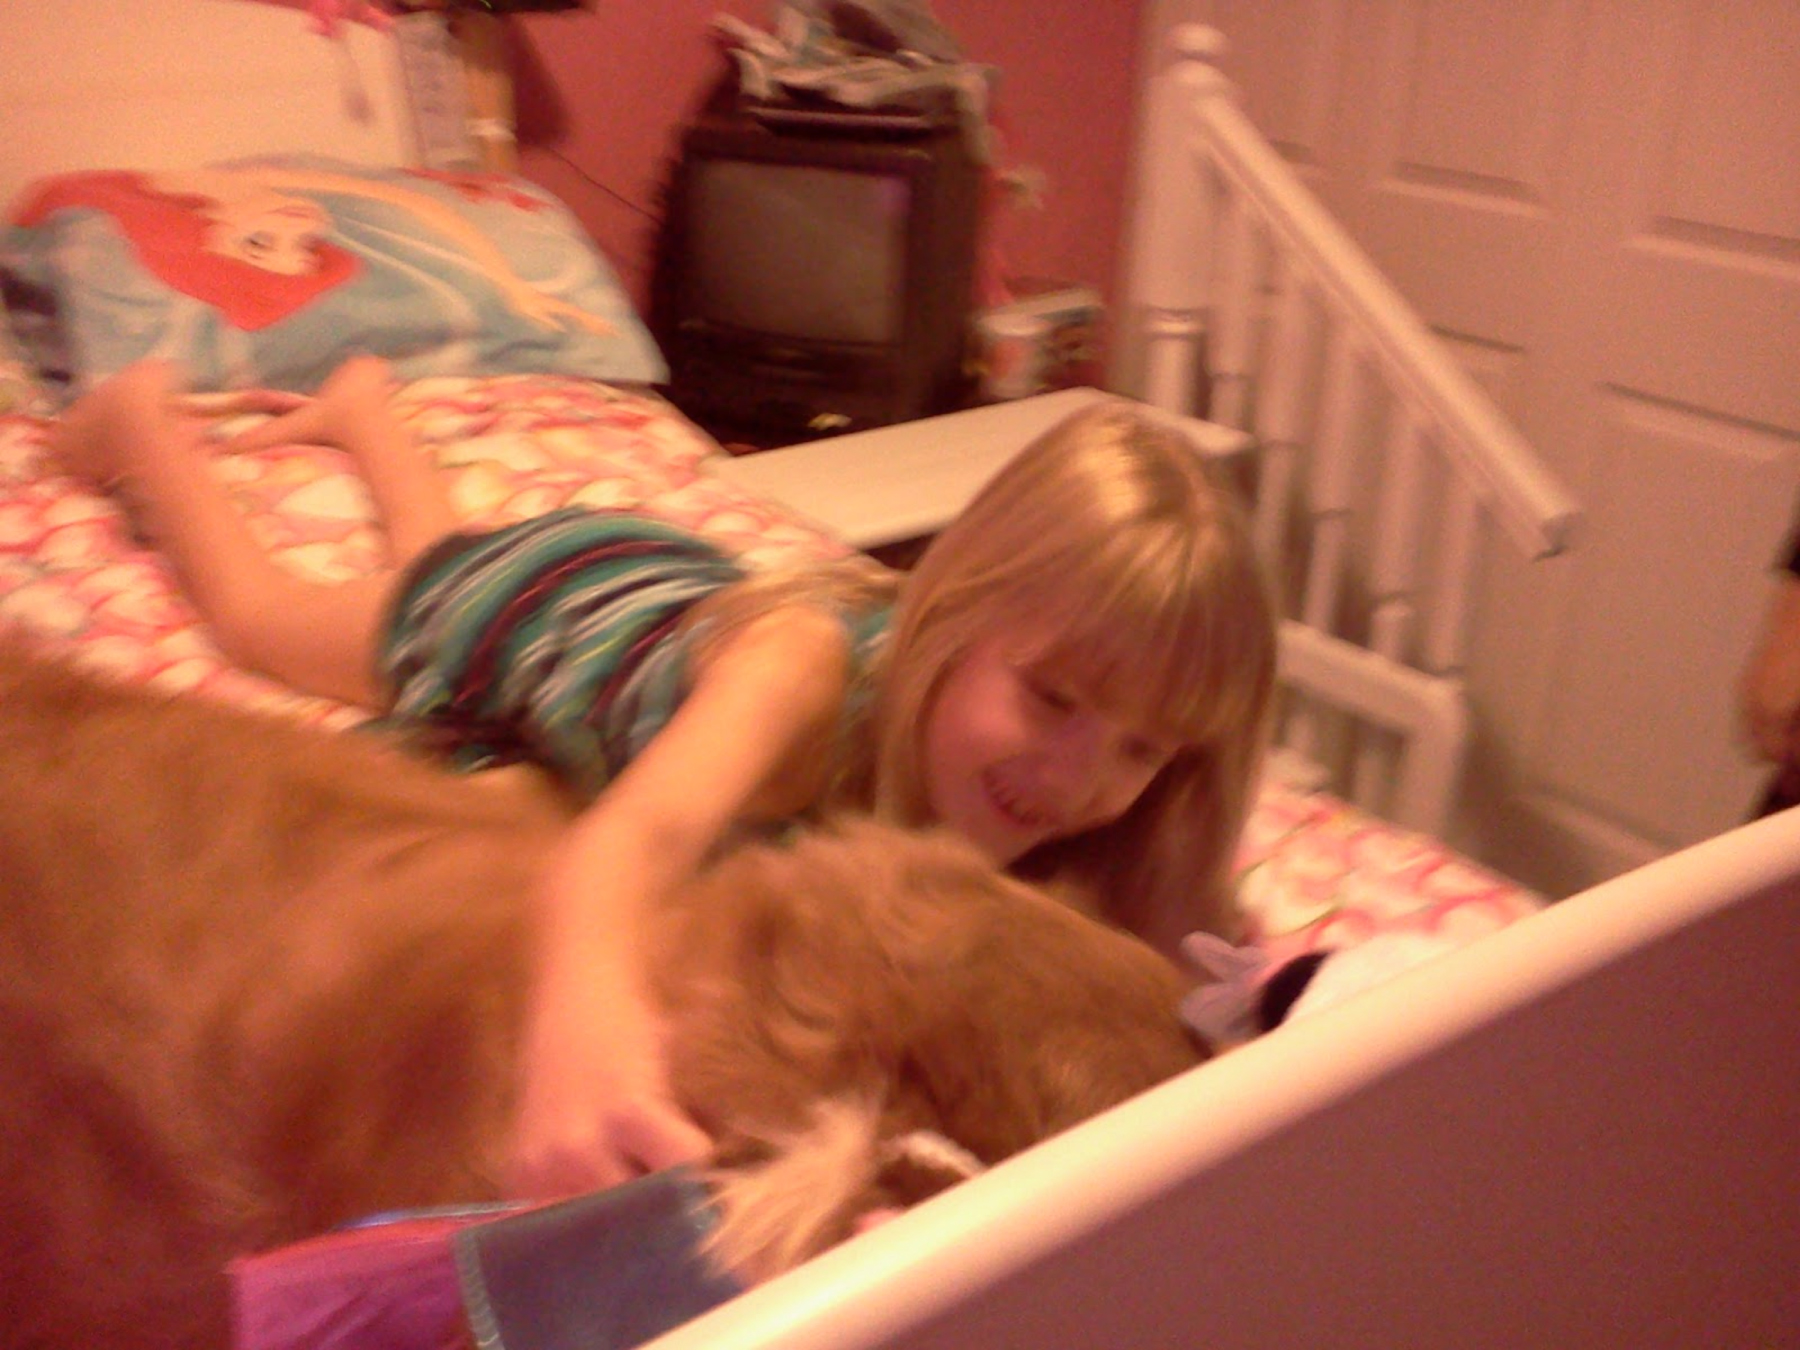 Girl laughing with dog on bed